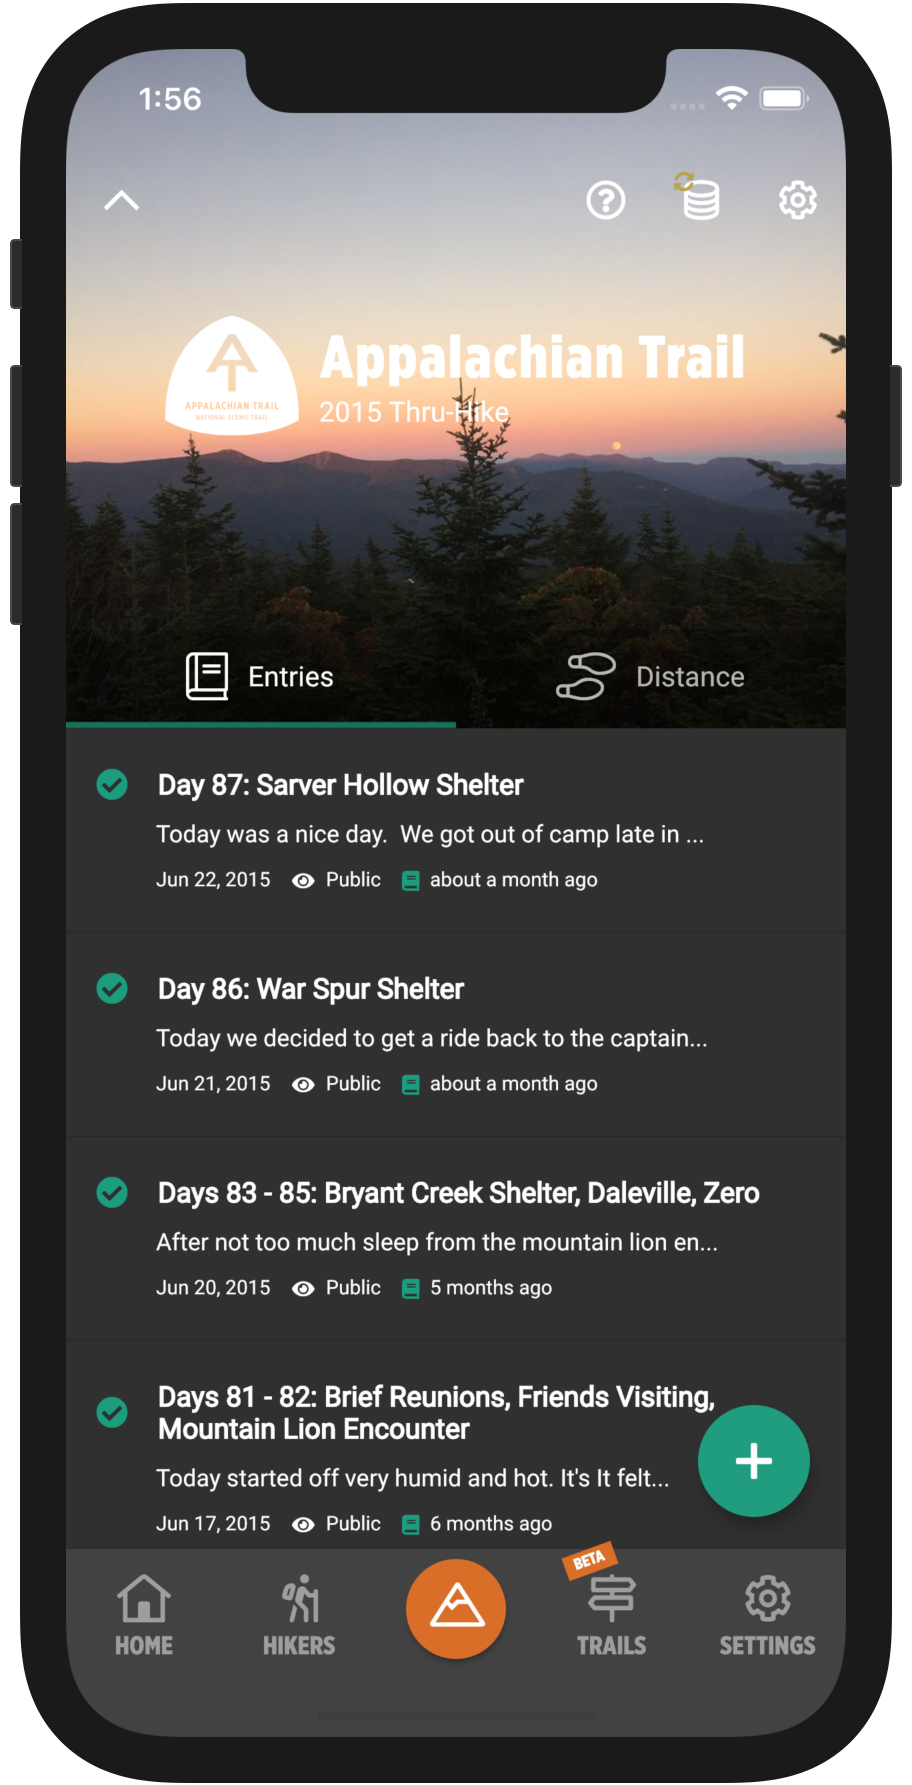 HikerFeed Mobile Screenshot - Hikes Home Page